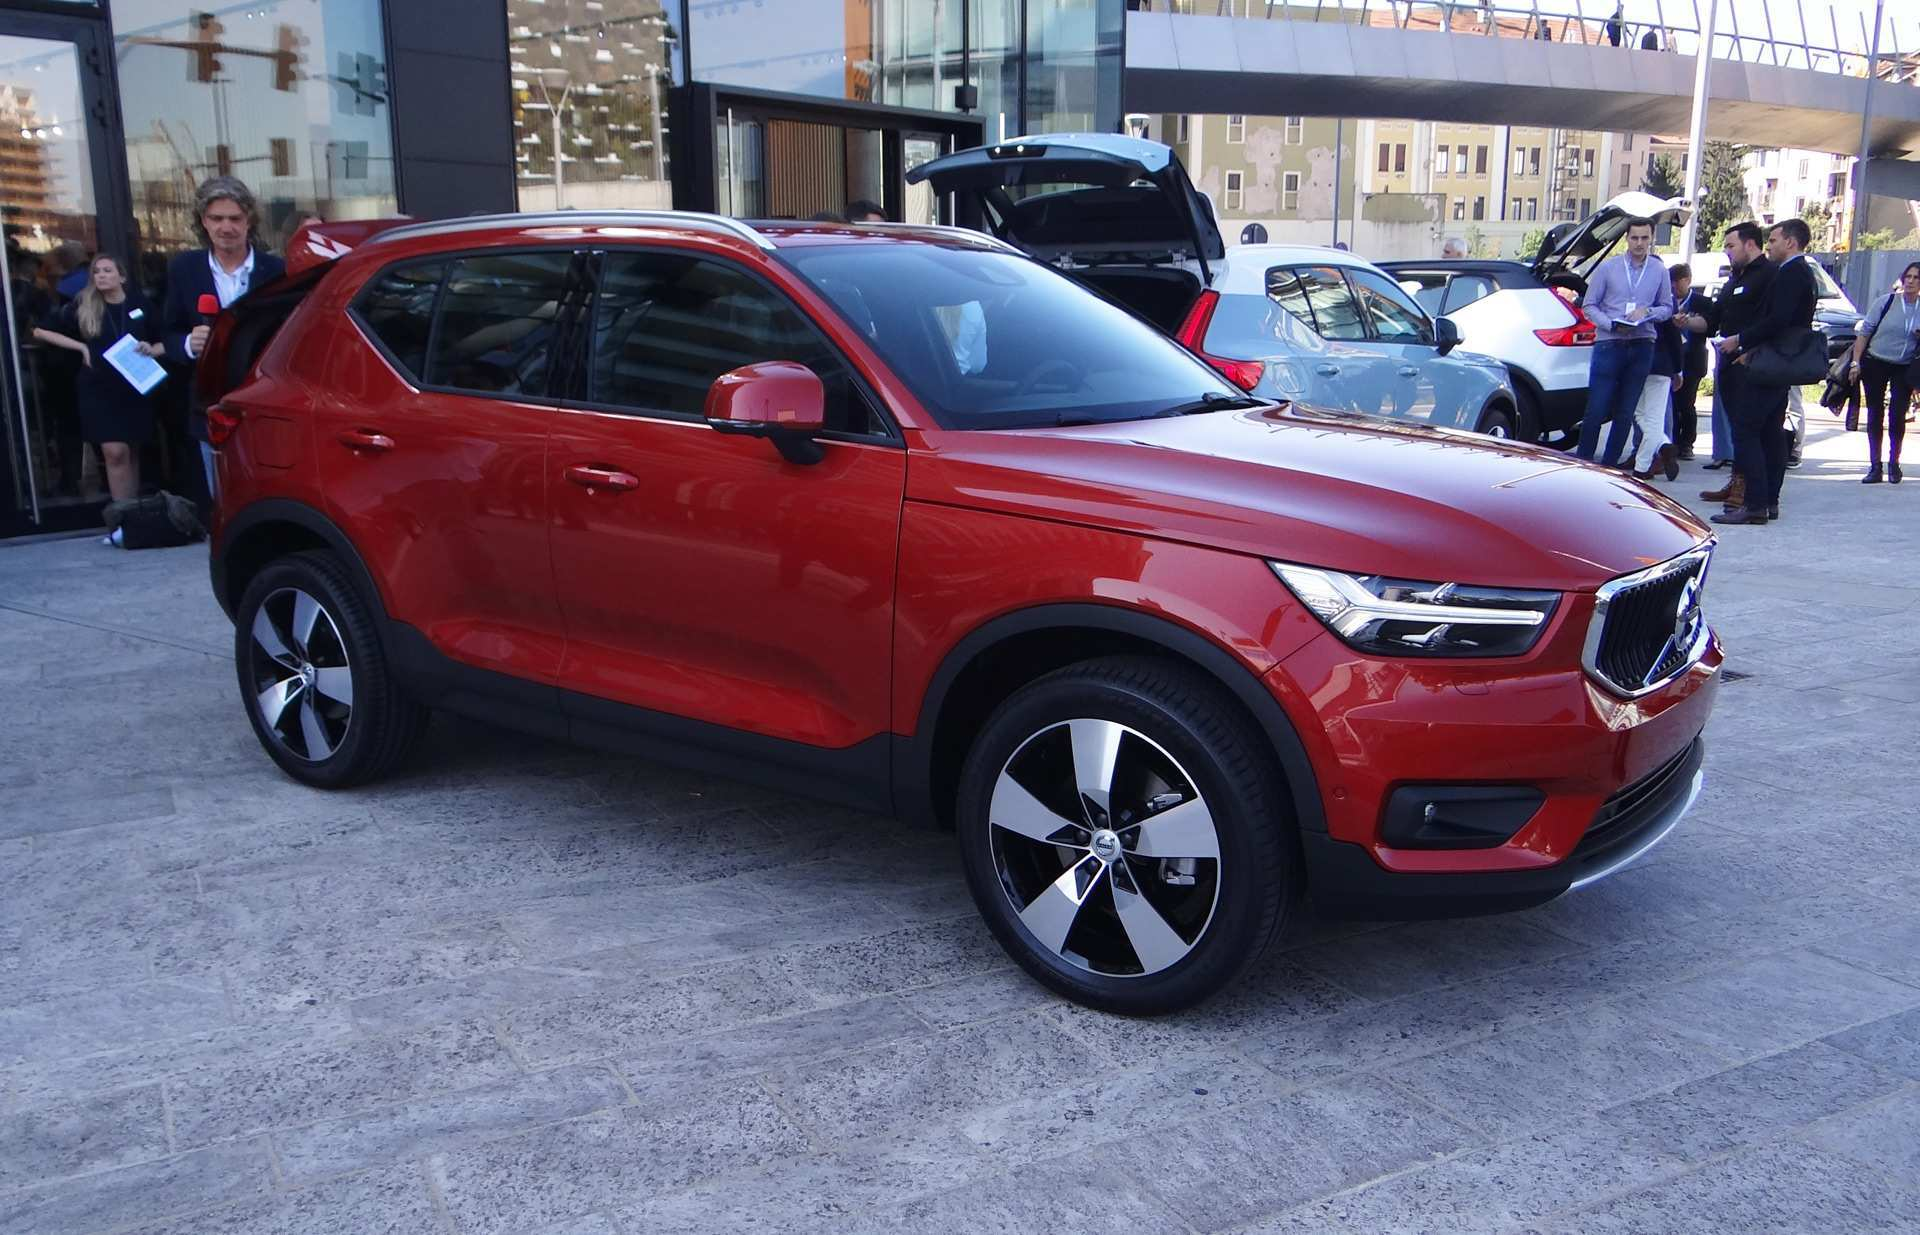 89 All New Volvo 2019 Electric Car Exterior And Interior